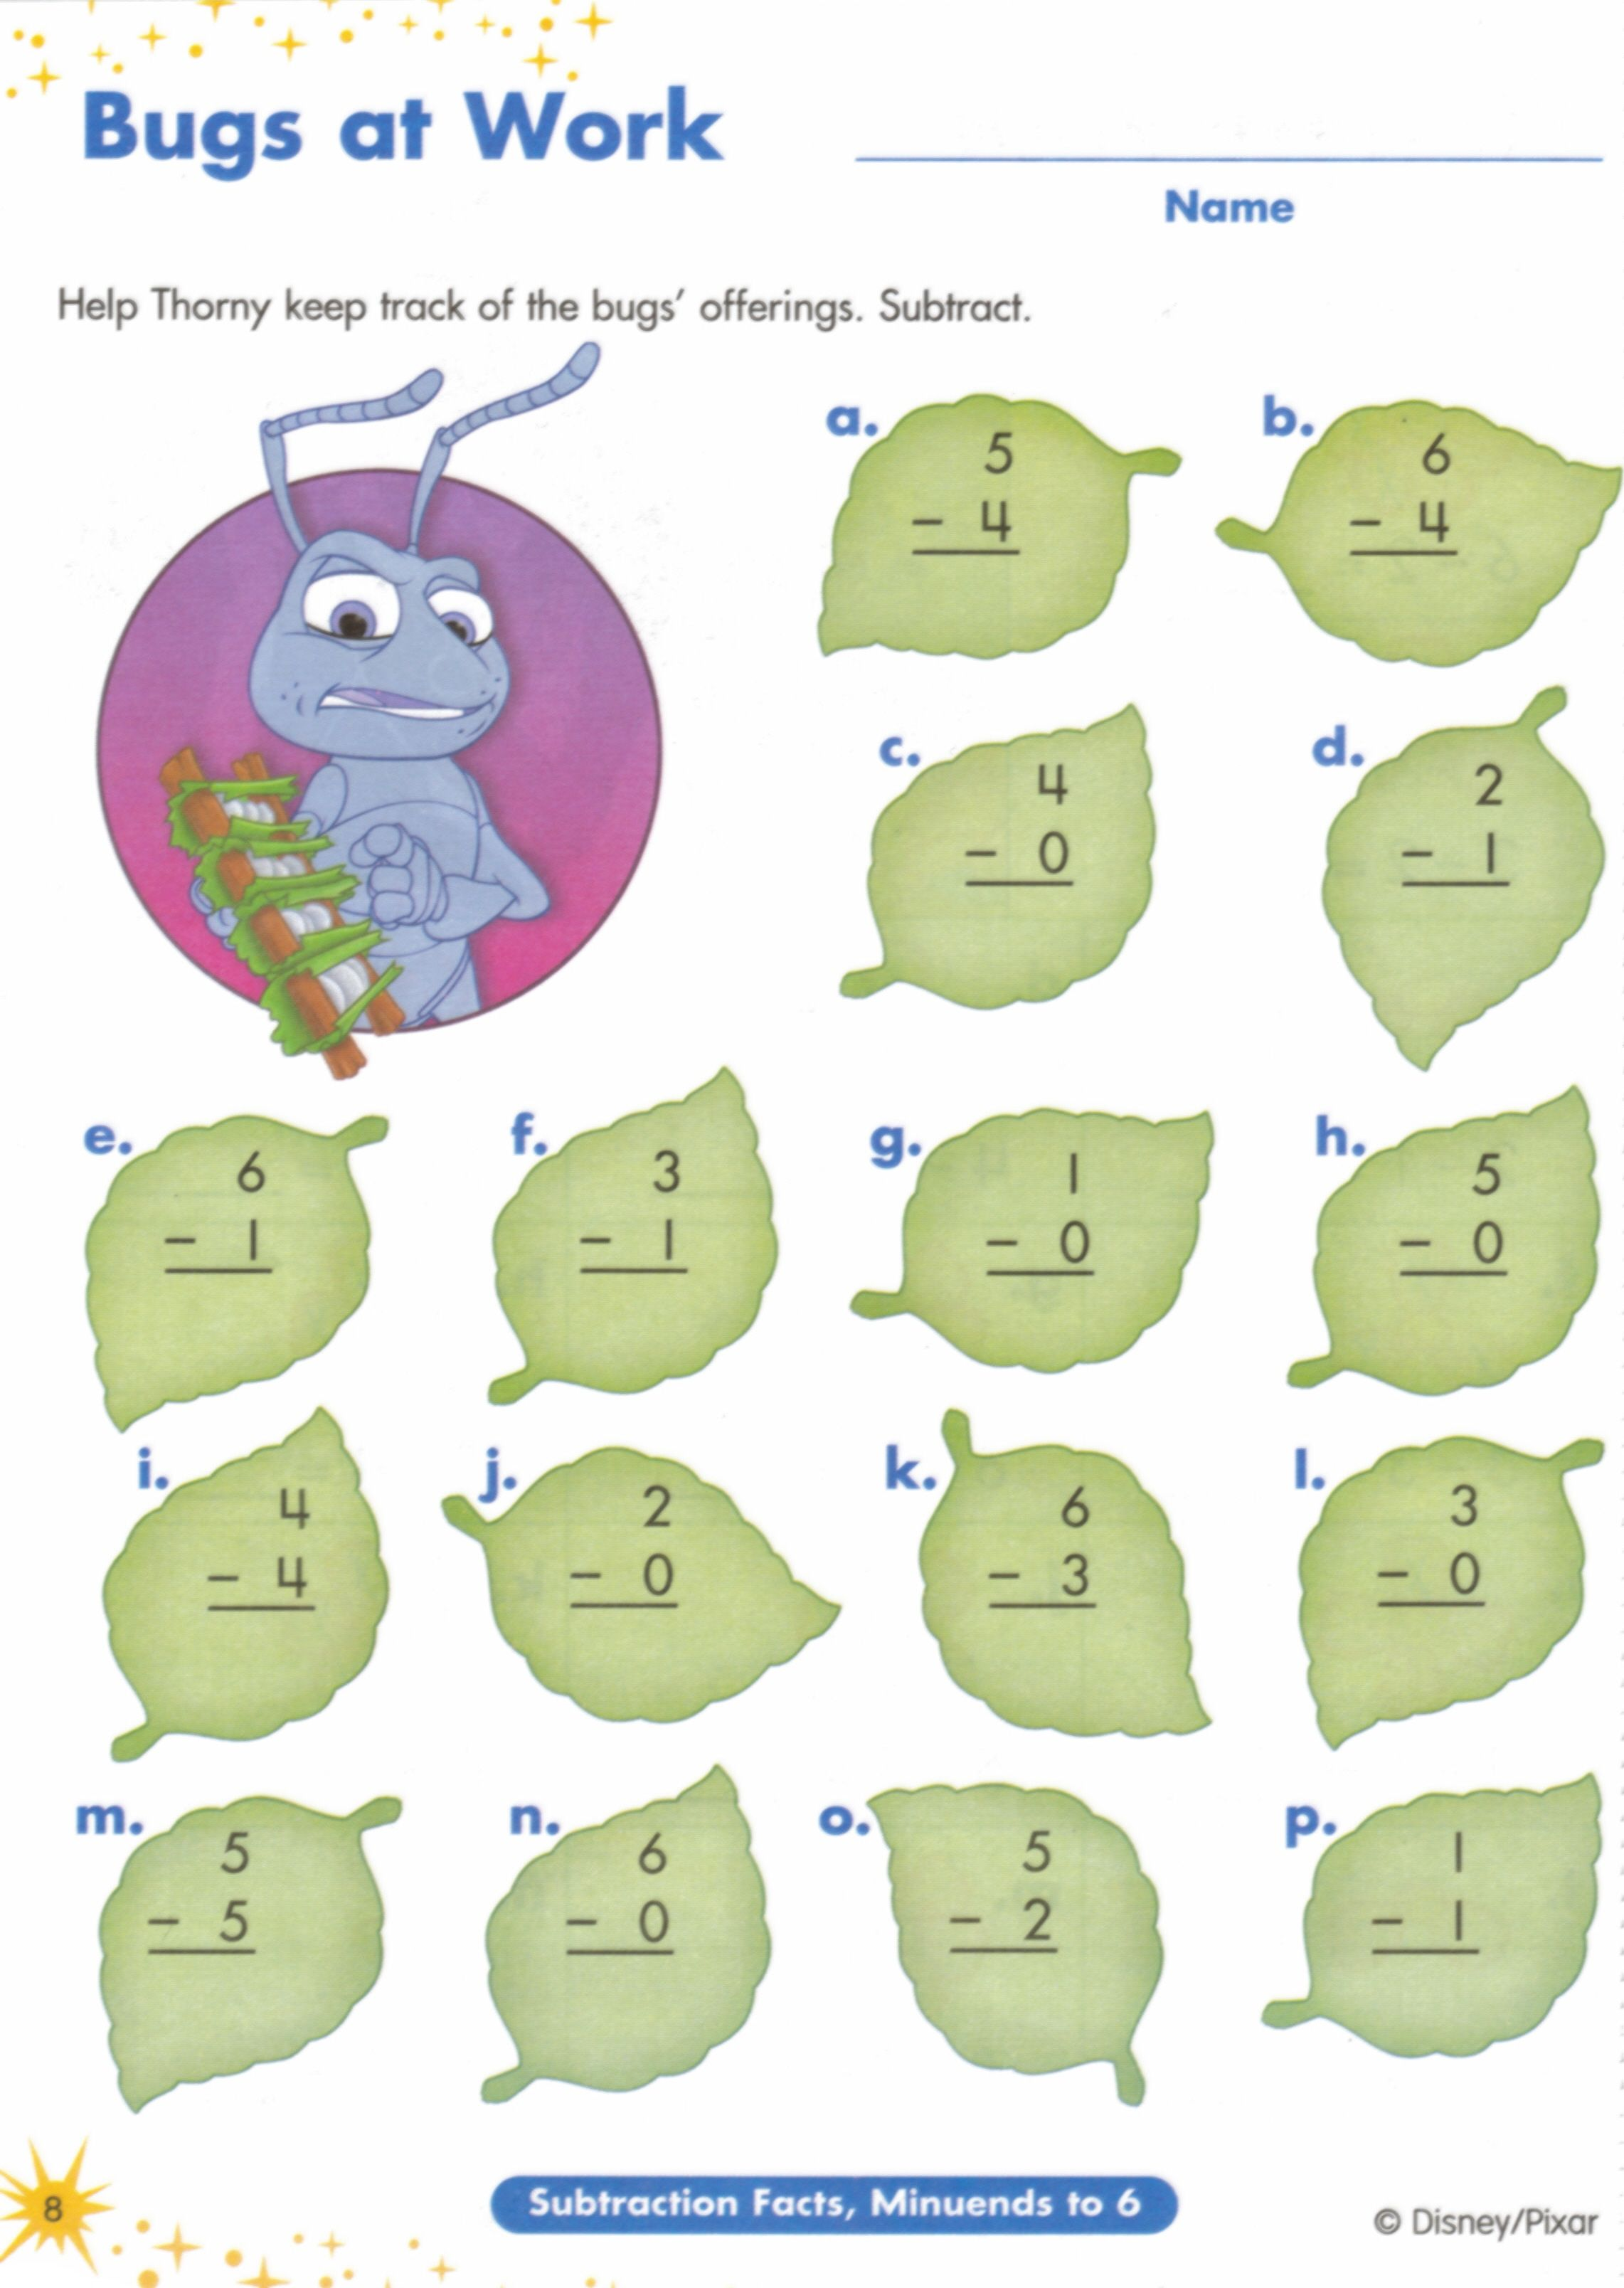 Proatmealus  Splendid  Images About Worksheets On Pinterest  Fun Facts For Kids  With Interesting  Images About Worksheets On Pinterest  Fun Facts For Kids Earth Day Worksheets And Jungles With Attractive Concave And Convex Lenses Worksheet Also Scientific Notation Worksheets Th Grade In Addition Free Printable Multiplication Worksheets  Problems And Blank Line Graph Worksheets As Well As Types Of Reactions Worksheets Additionally Naming Molecular Compounds Worksheet With Answers From Pinterestcom With Proatmealus  Interesting  Images About Worksheets On Pinterest  Fun Facts For Kids  With Attractive  Images About Worksheets On Pinterest  Fun Facts For Kids Earth Day Worksheets And Jungles And Splendid Concave And Convex Lenses Worksheet Also Scientific Notation Worksheets Th Grade In Addition Free Printable Multiplication Worksheets  Problems From Pinterestcom